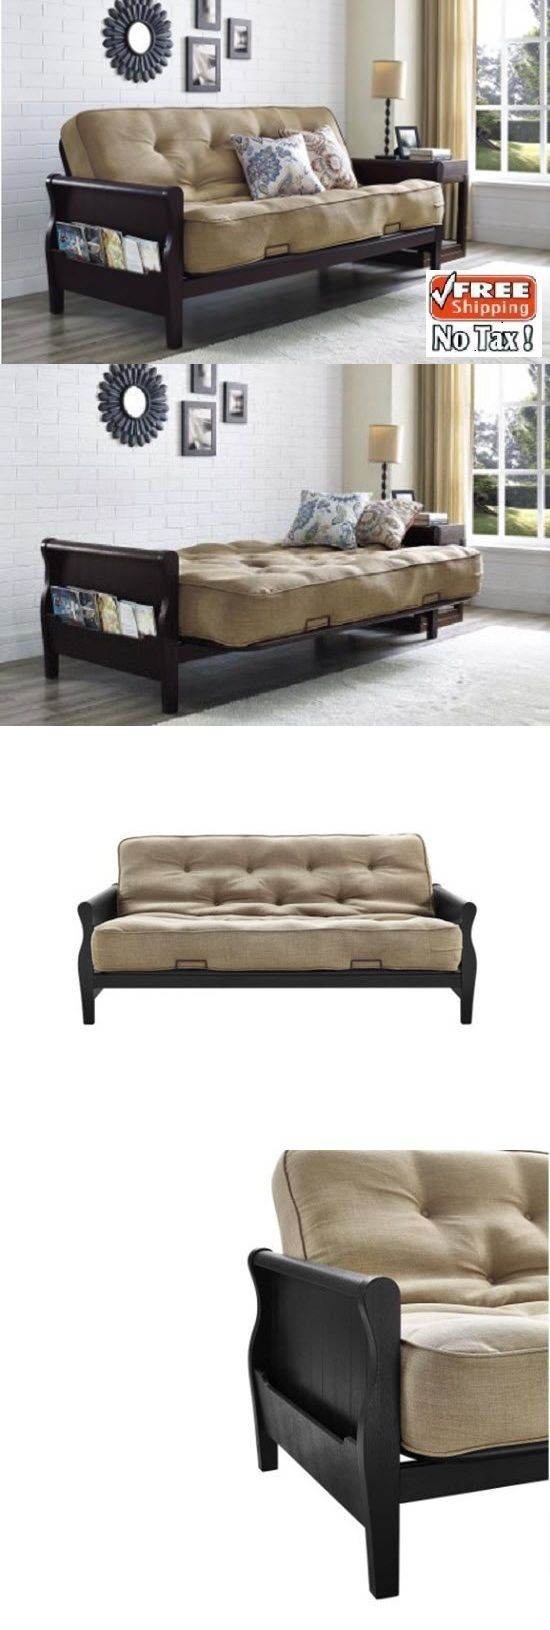 Futons Frames and Covers 131579: Futon Sofa Bed Mattress Frame Included Bedroom Furniture Dorm Living Room Guest -> BUY IT NOW ONLY: $379 on eBay!